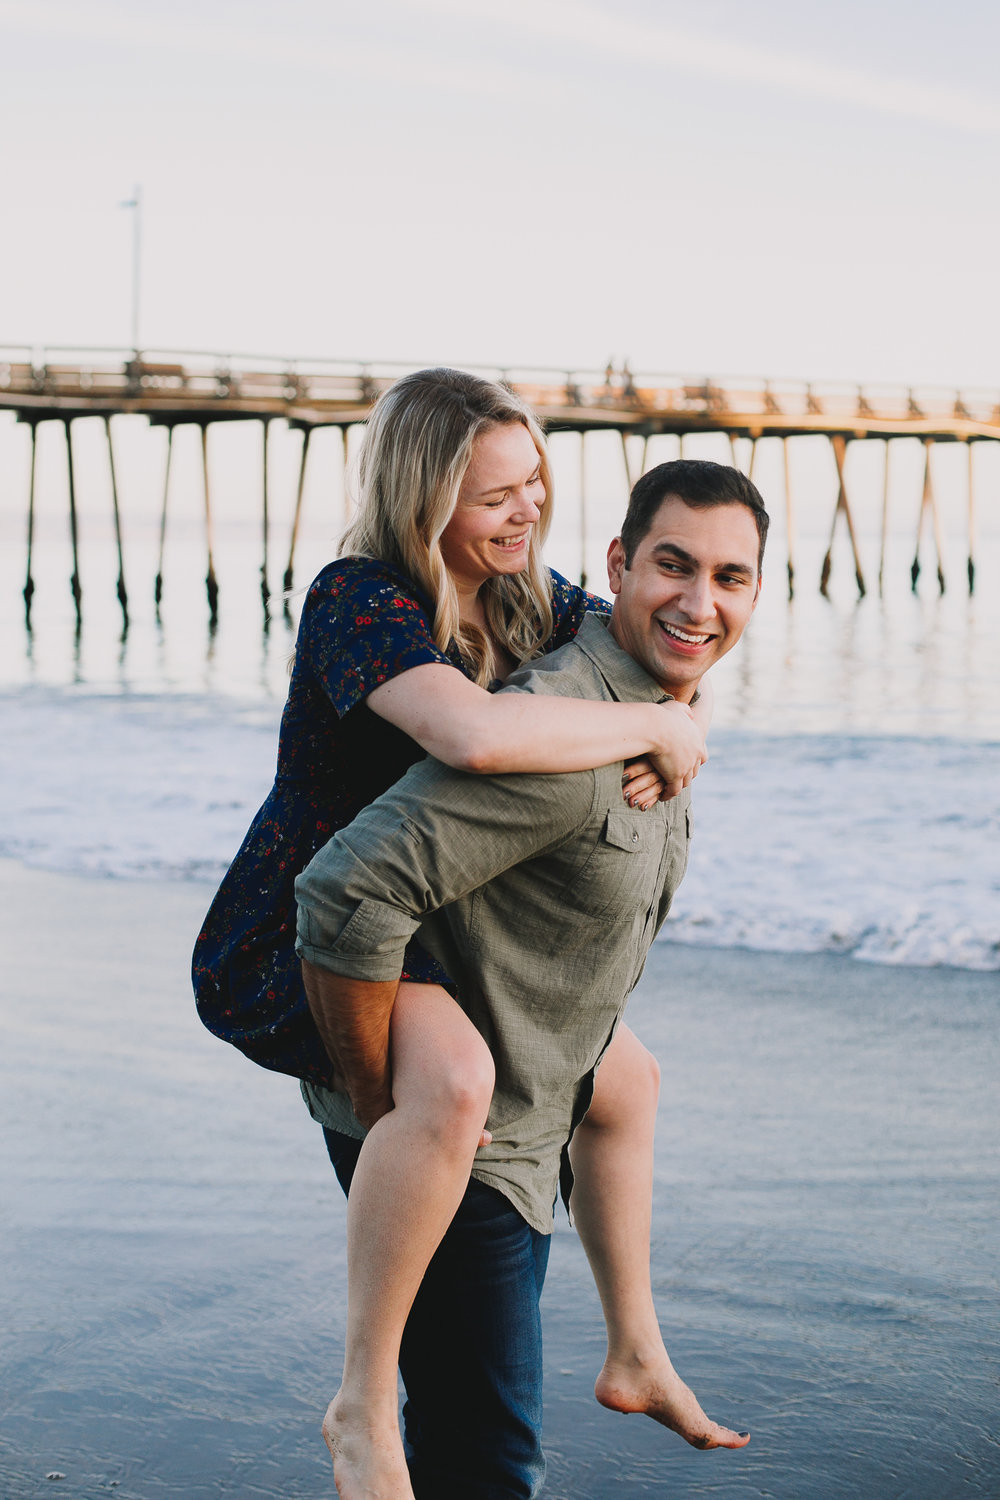 Archer Inspired Photography Capitola Beach Santa Cruz Wedding Engagement Lifestyle Session Photographer-106.jpg